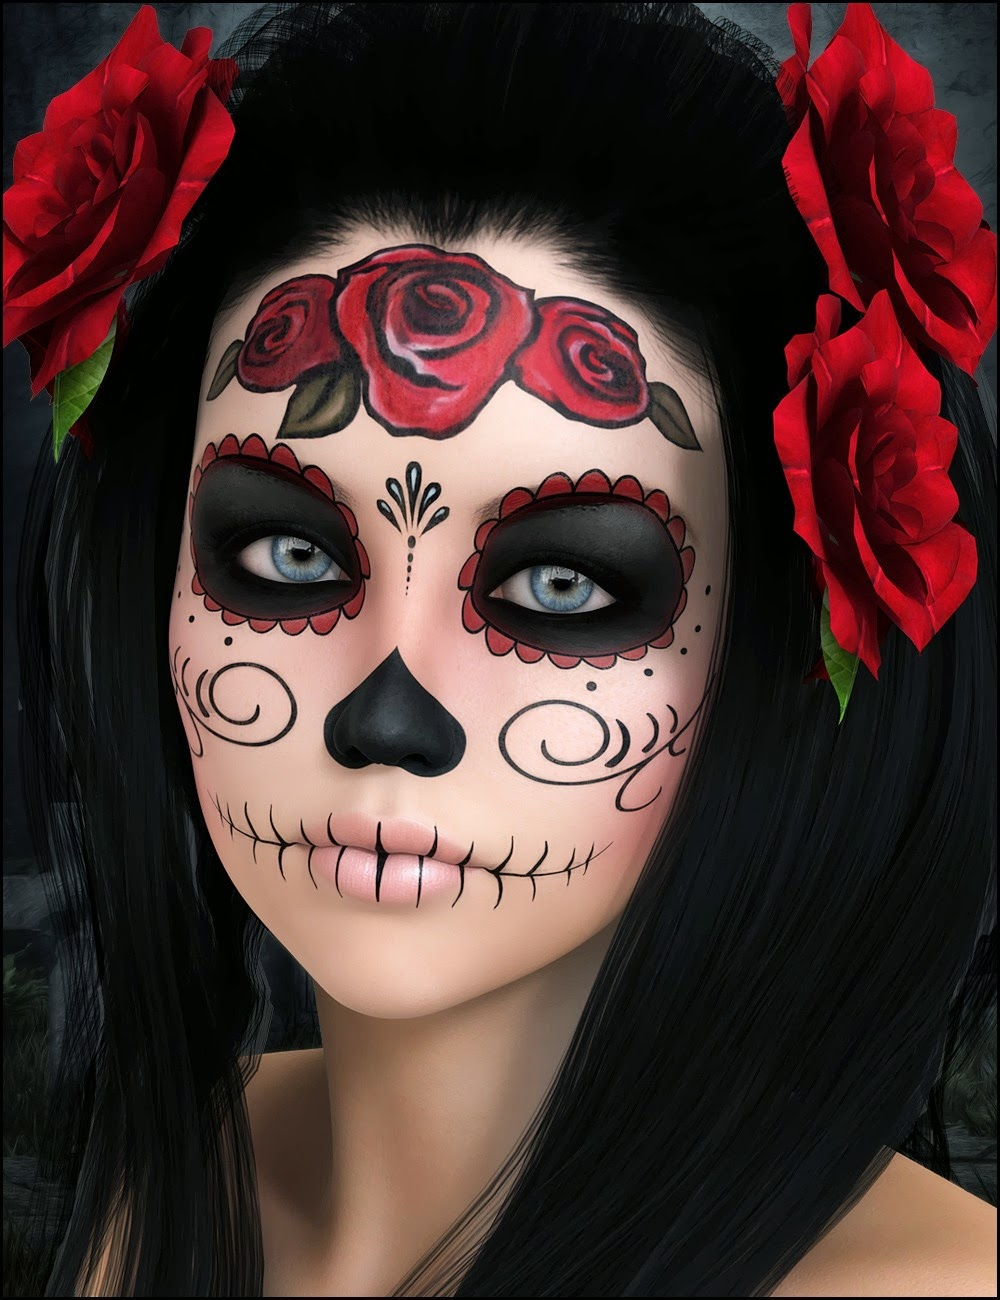 Download DAZ Studio 3 for FREE!: DAZ 3D - Catrina